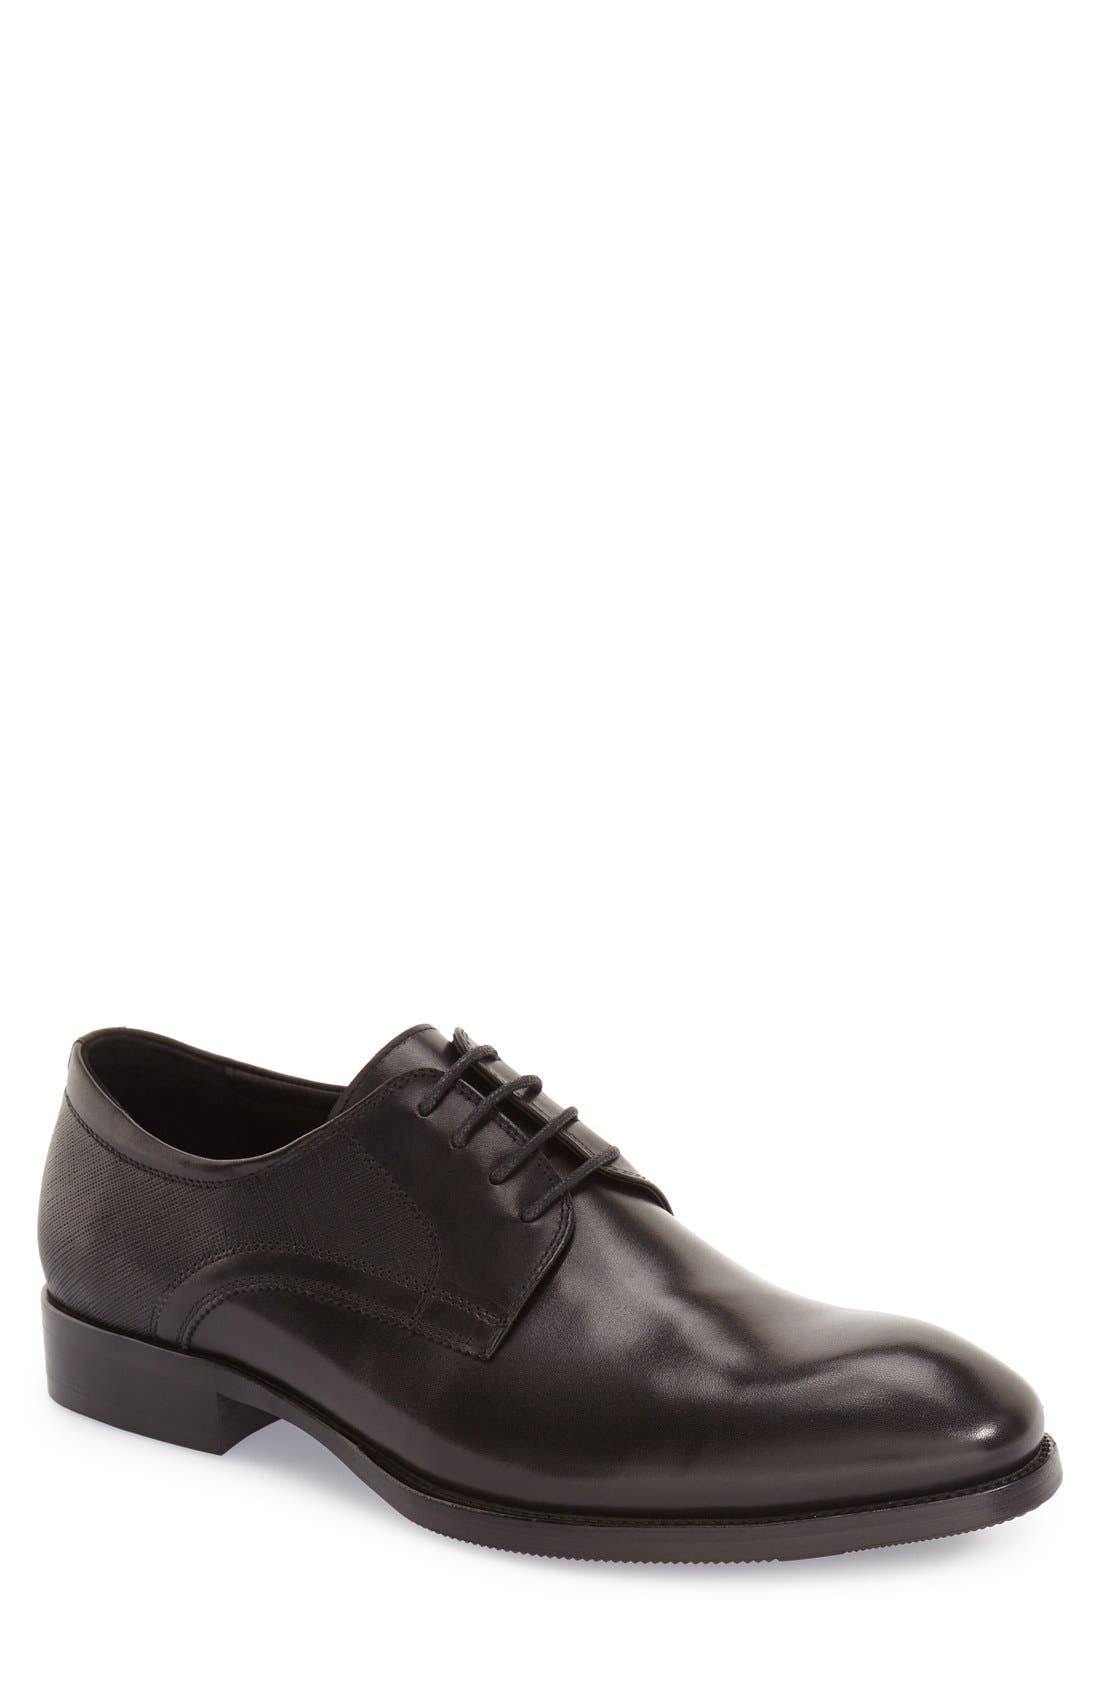 Alternate Image 1 Selected - Zanzara 'Bruckner' Plain Toe Derby (Men)